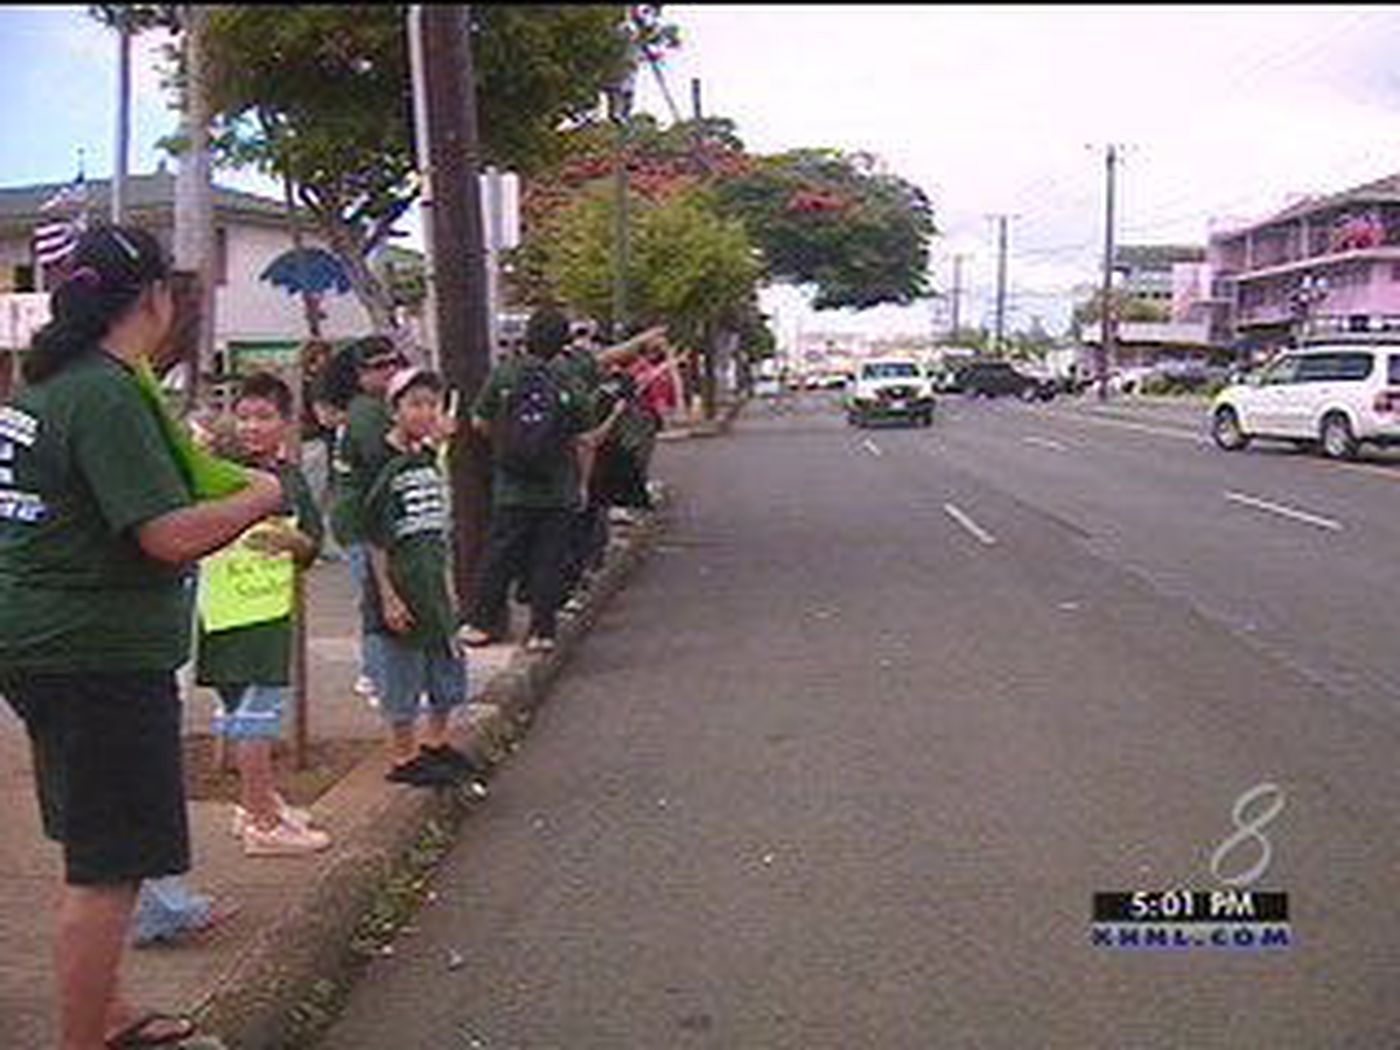 Kalihi Residents Workers Encourage Traffic Safety 1400x1050